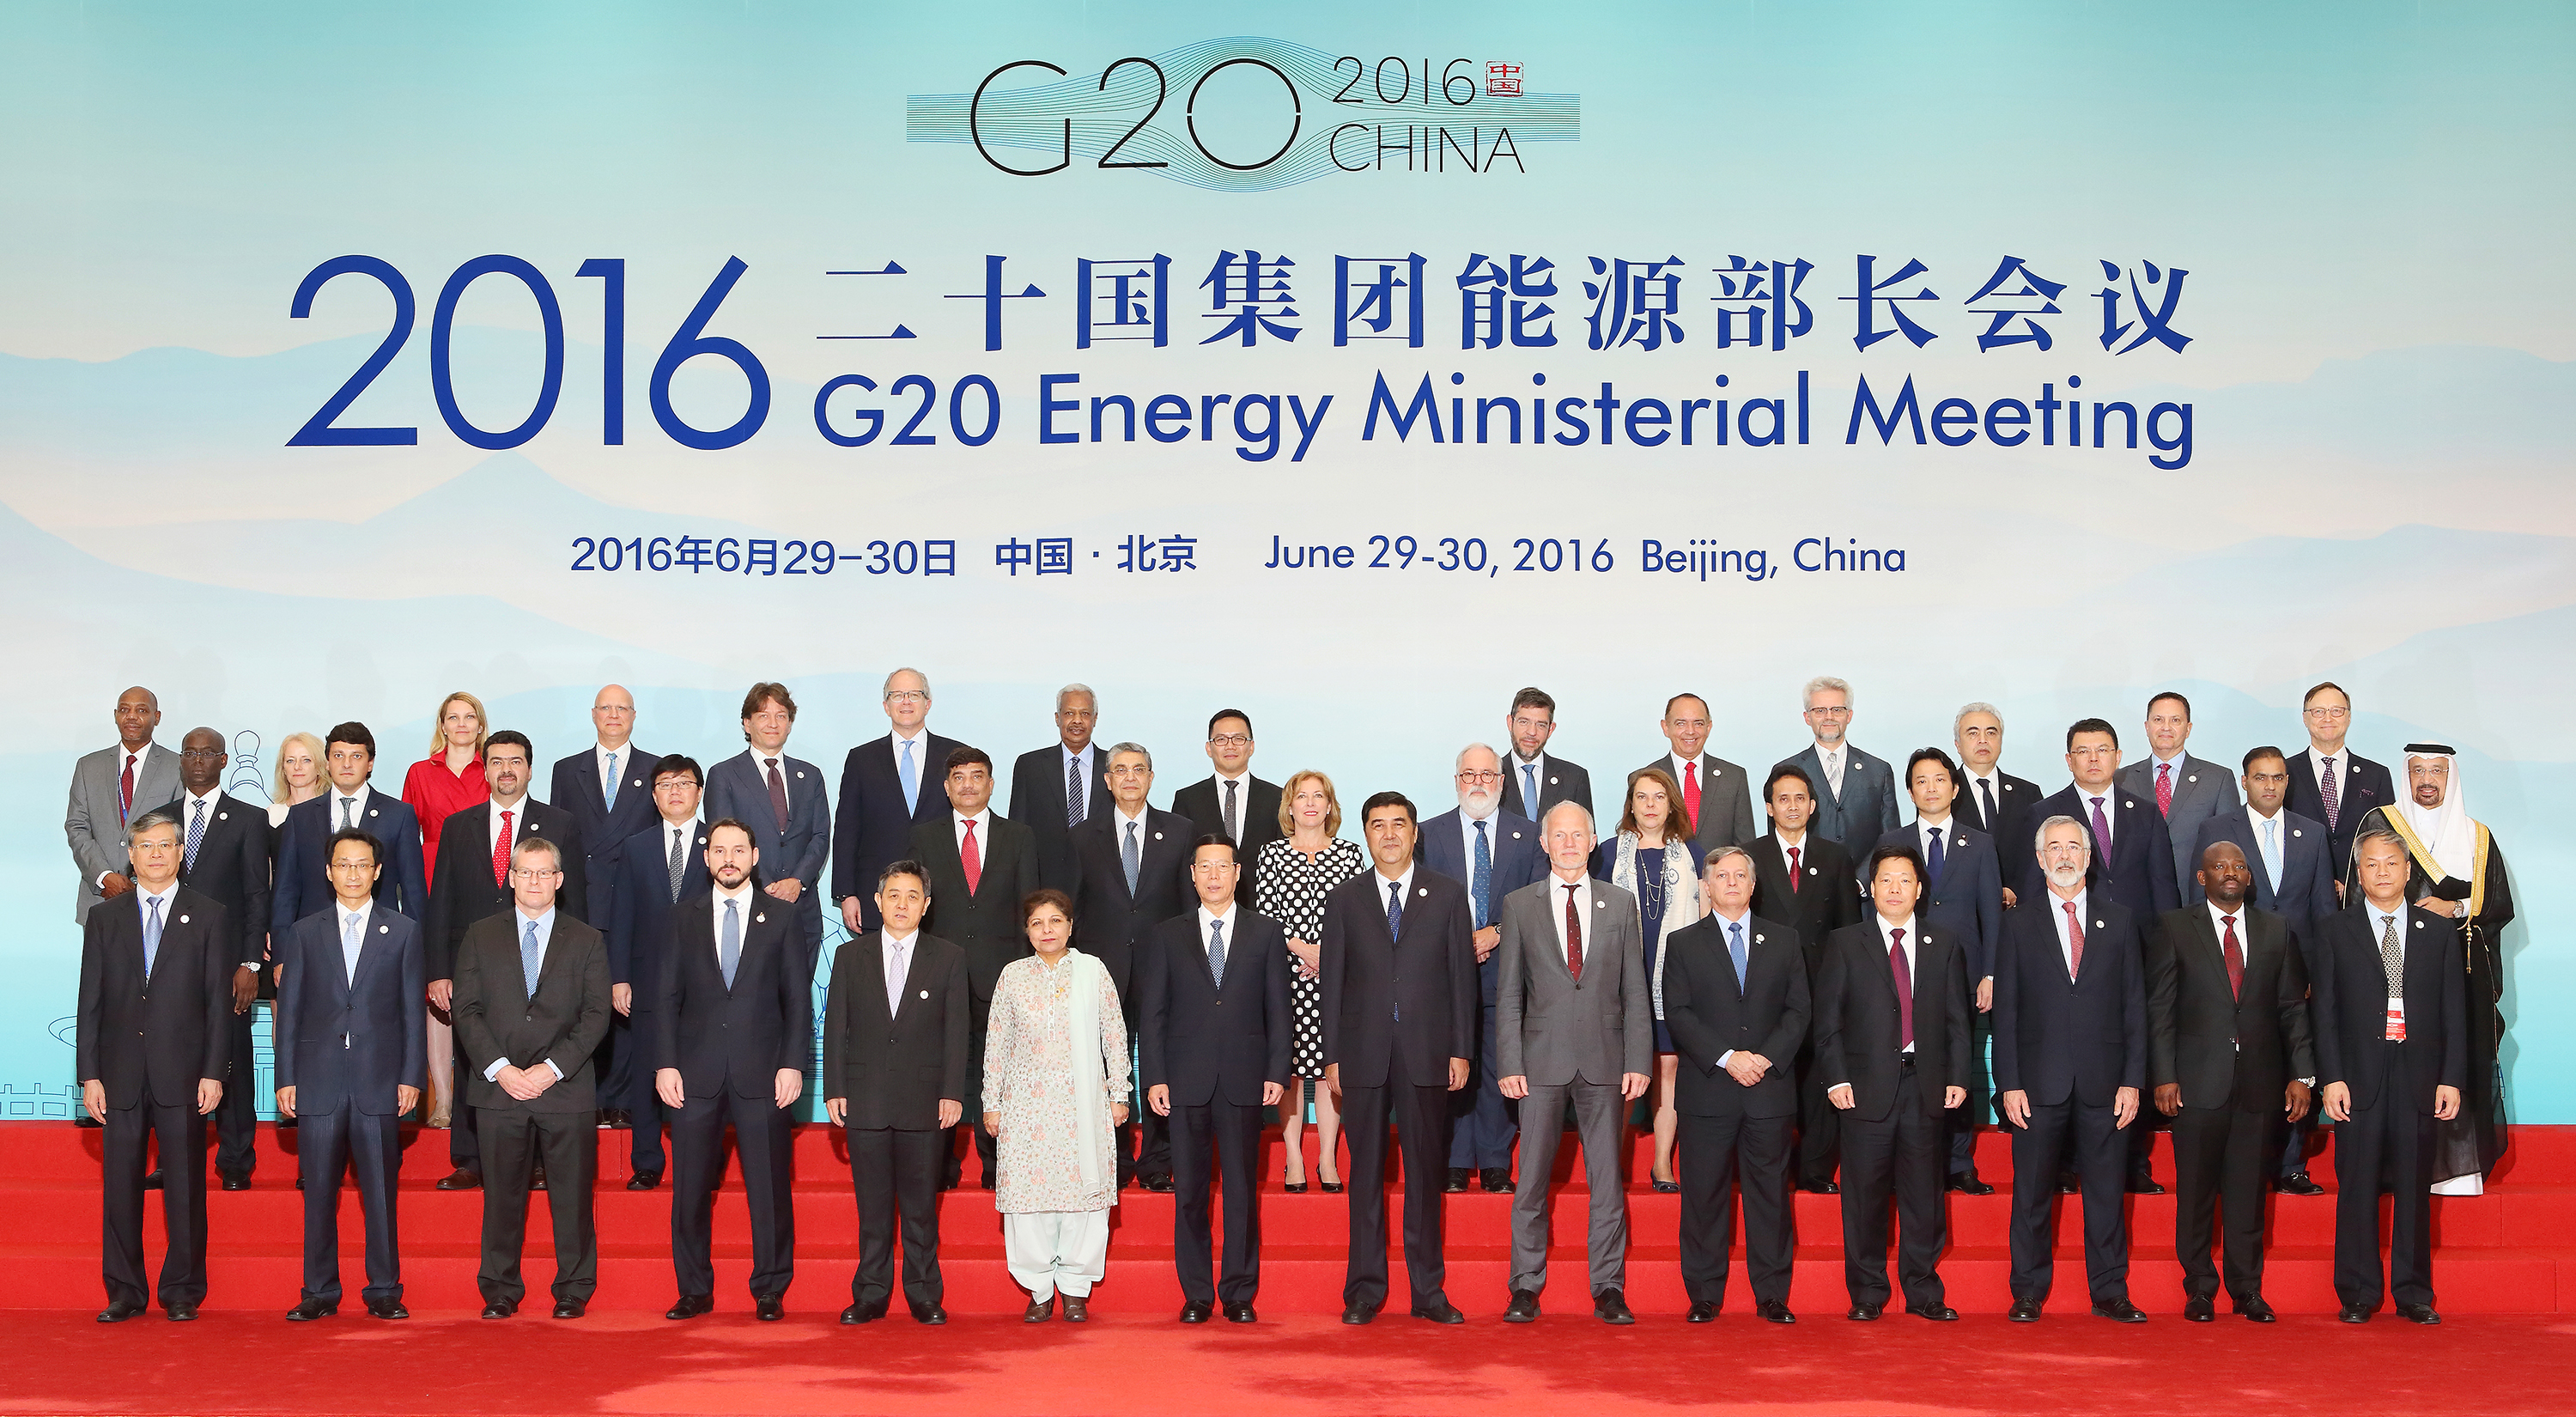 G20, IRENA take on renewable energy at energy ministers meeting